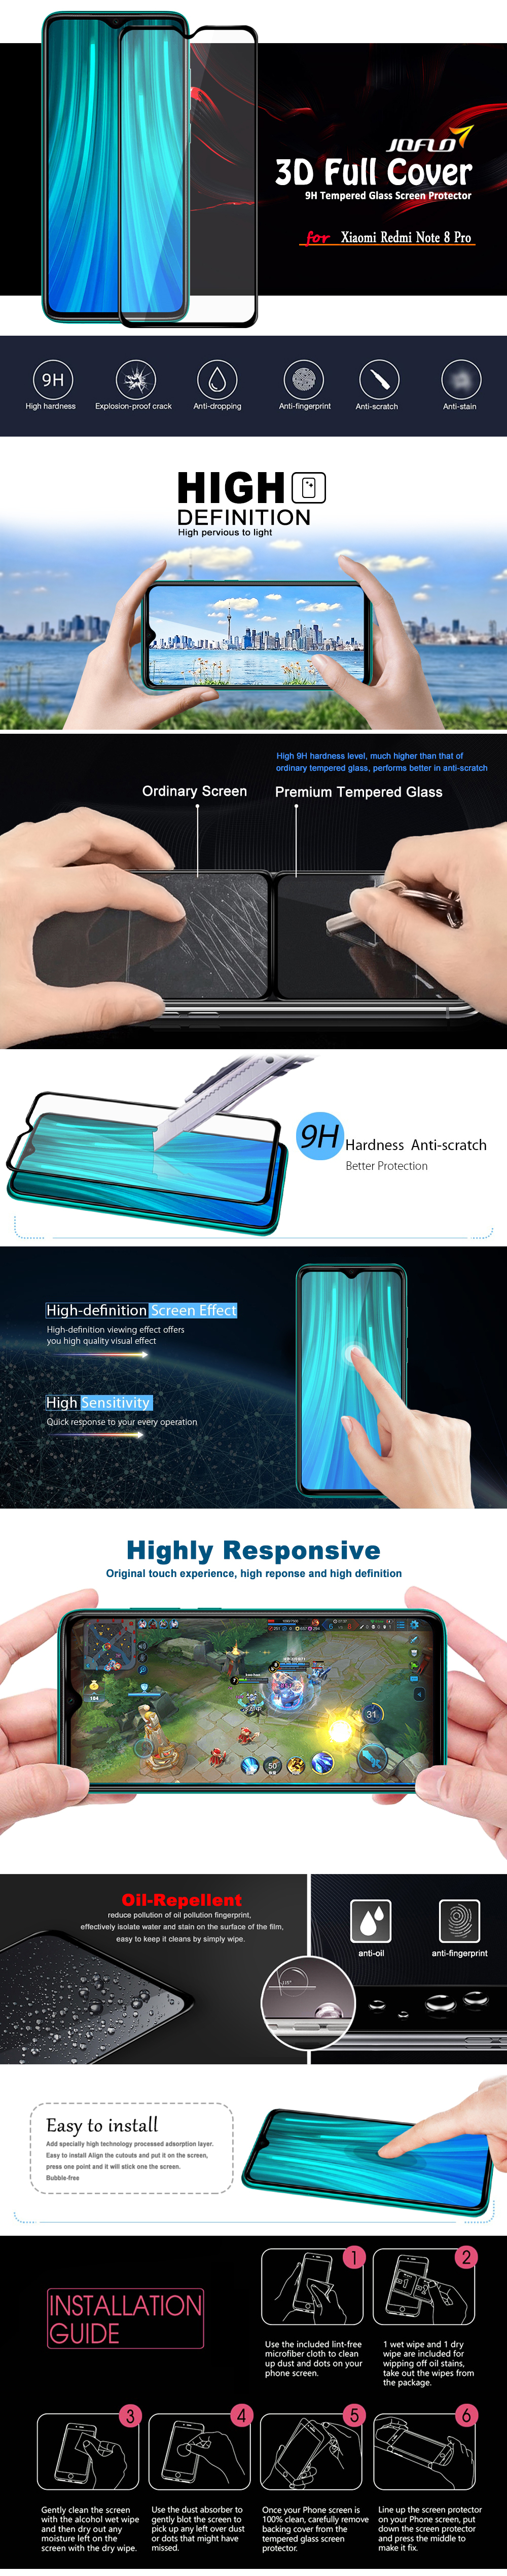 3D Full Cover Tempered Glass Screen Protector for  Redmi Note 8 Pro - Black 1pc